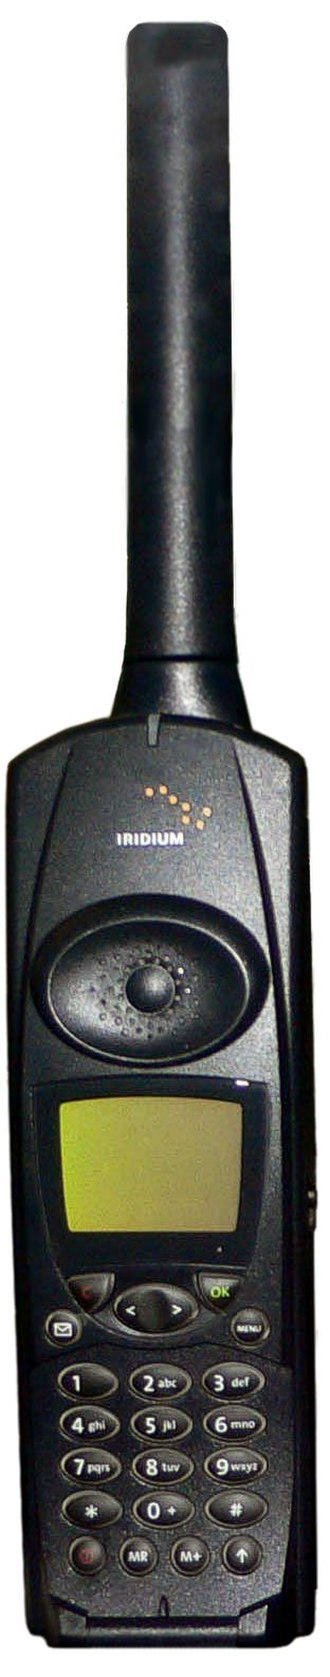 Iridium satellite constellation - Image: Iridium phone 2